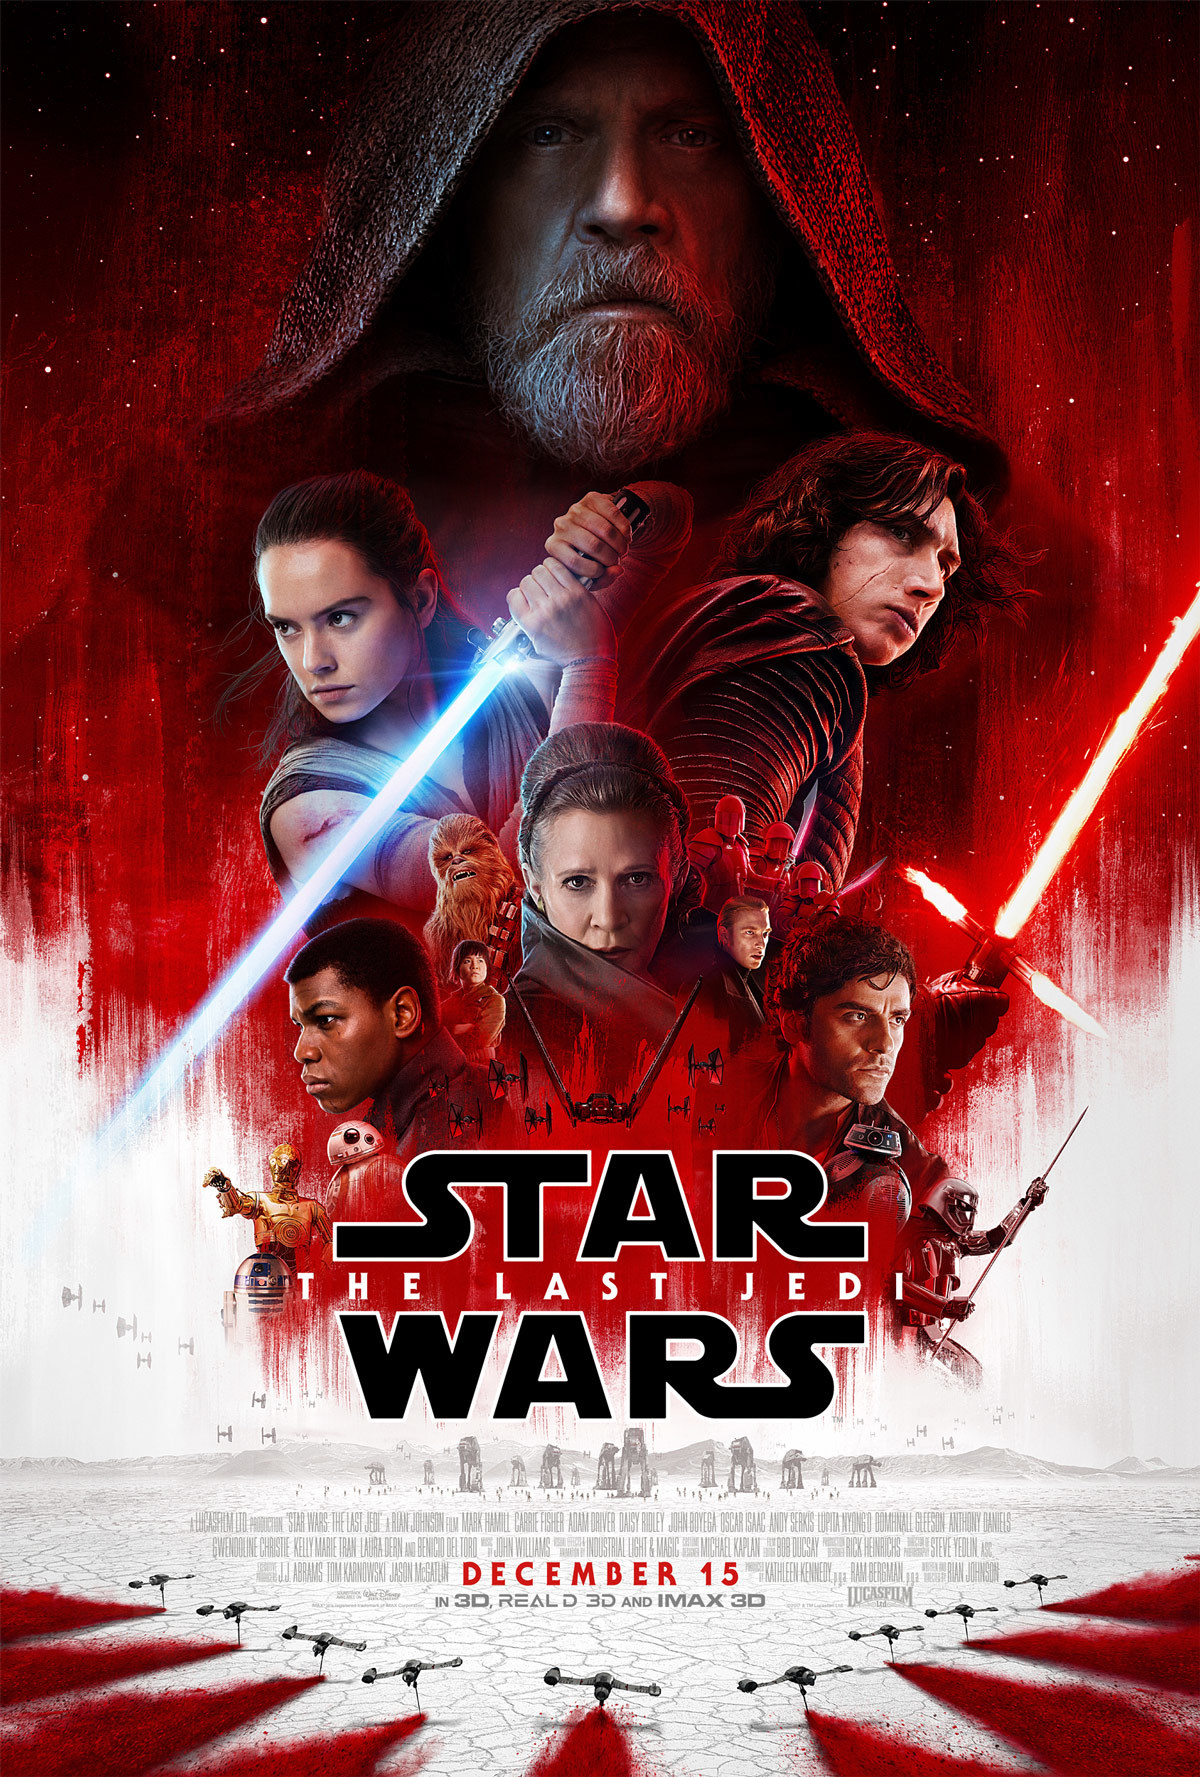 the-last-jedi-theatrical-blo.jpg